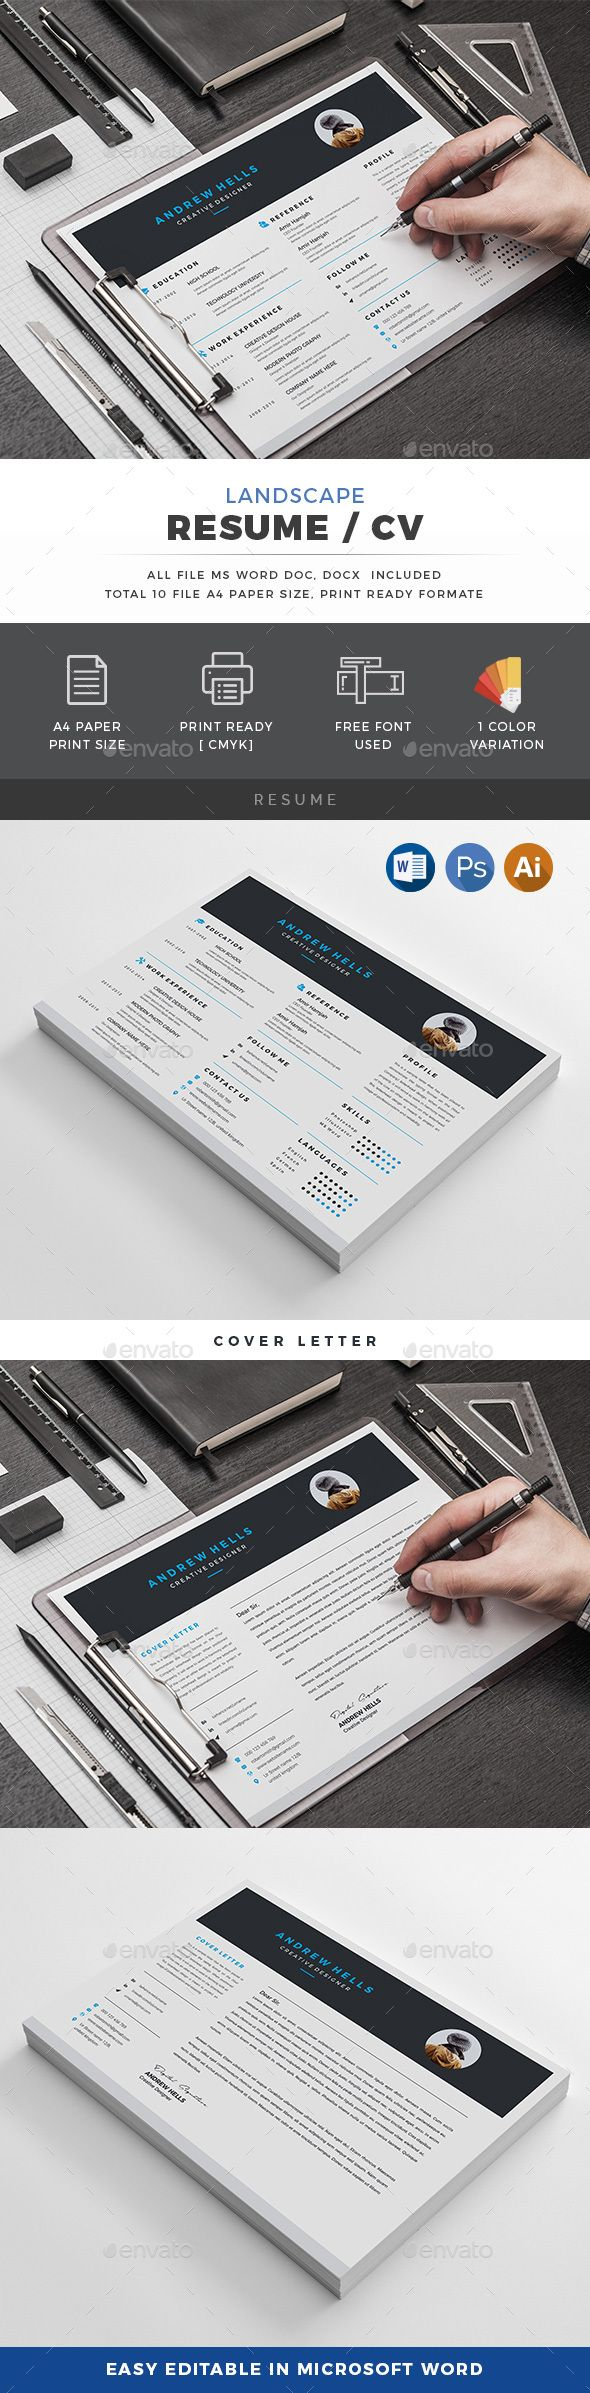 free creative resume templates that stand out%0A Landscape Resume